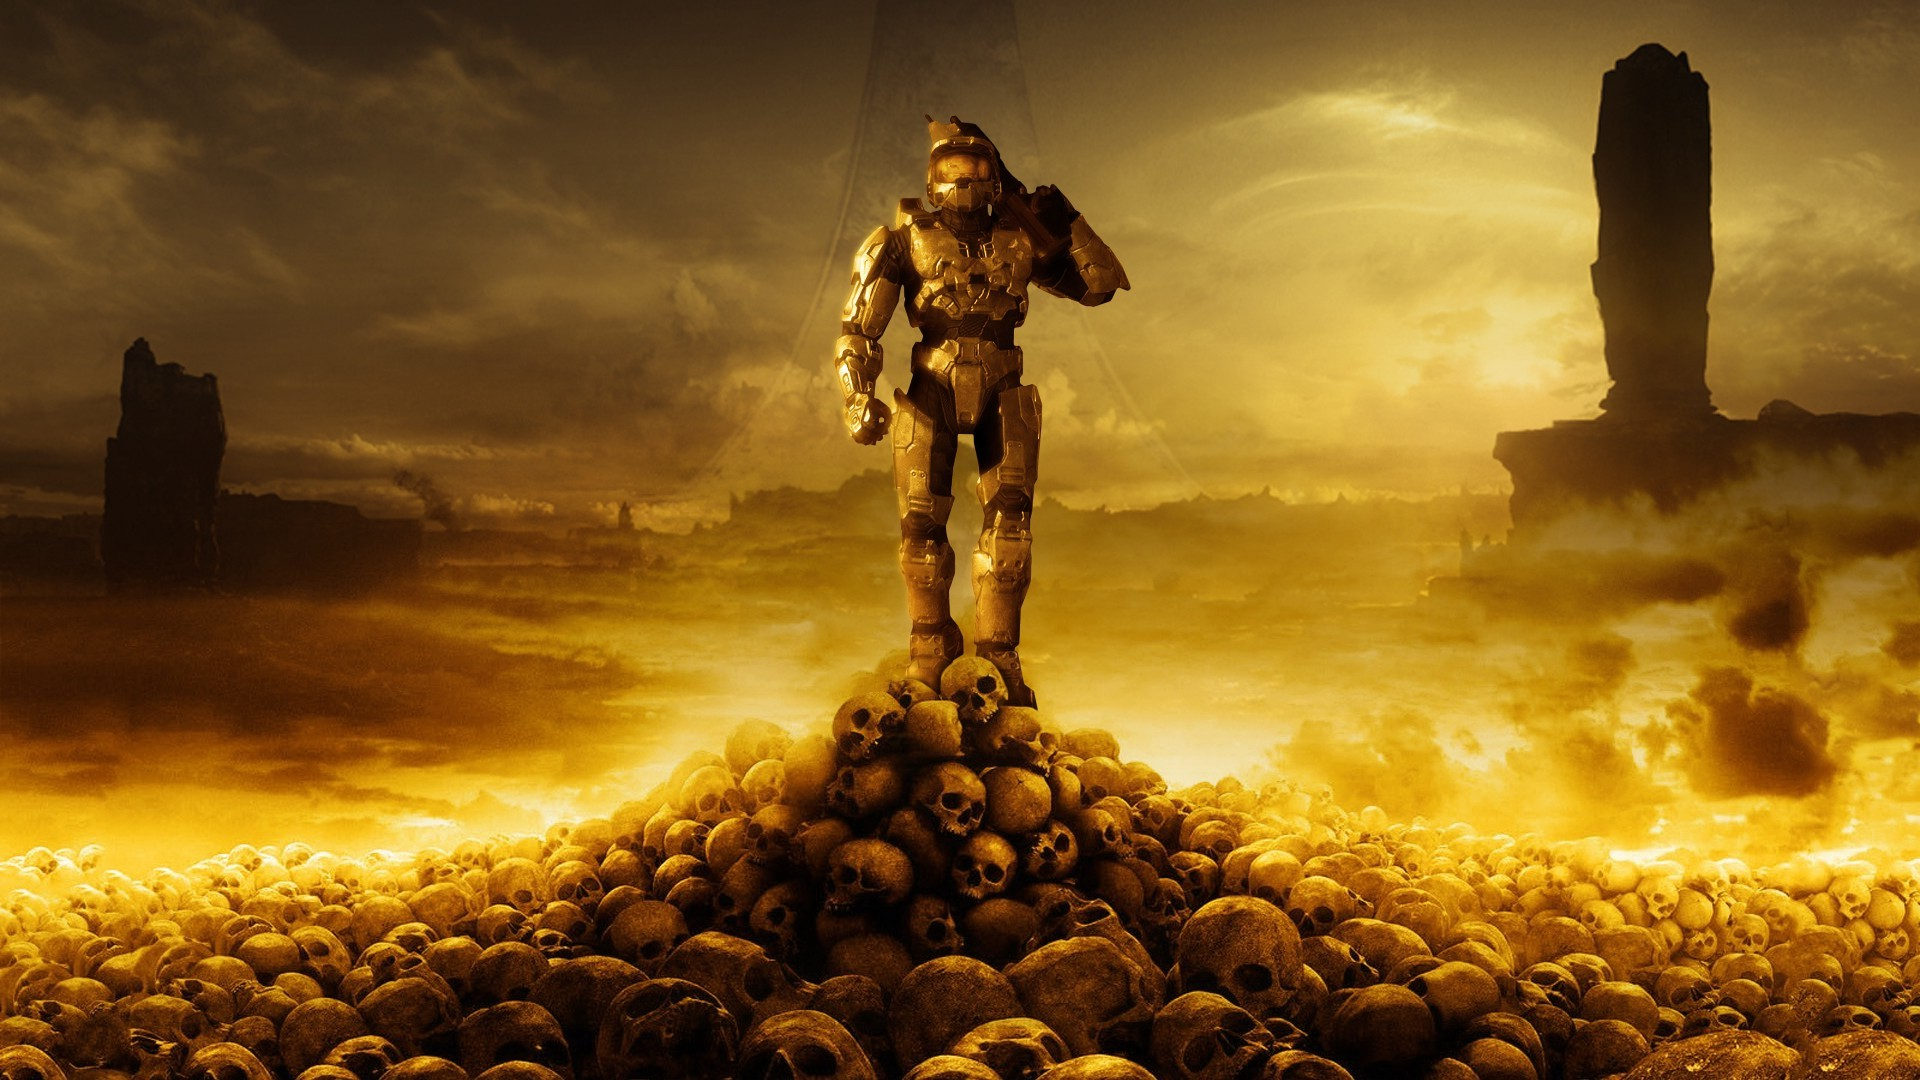 1920x1080 ... Master Chief, Halo 3, Skull, Video Games, Artwork Wallpapers